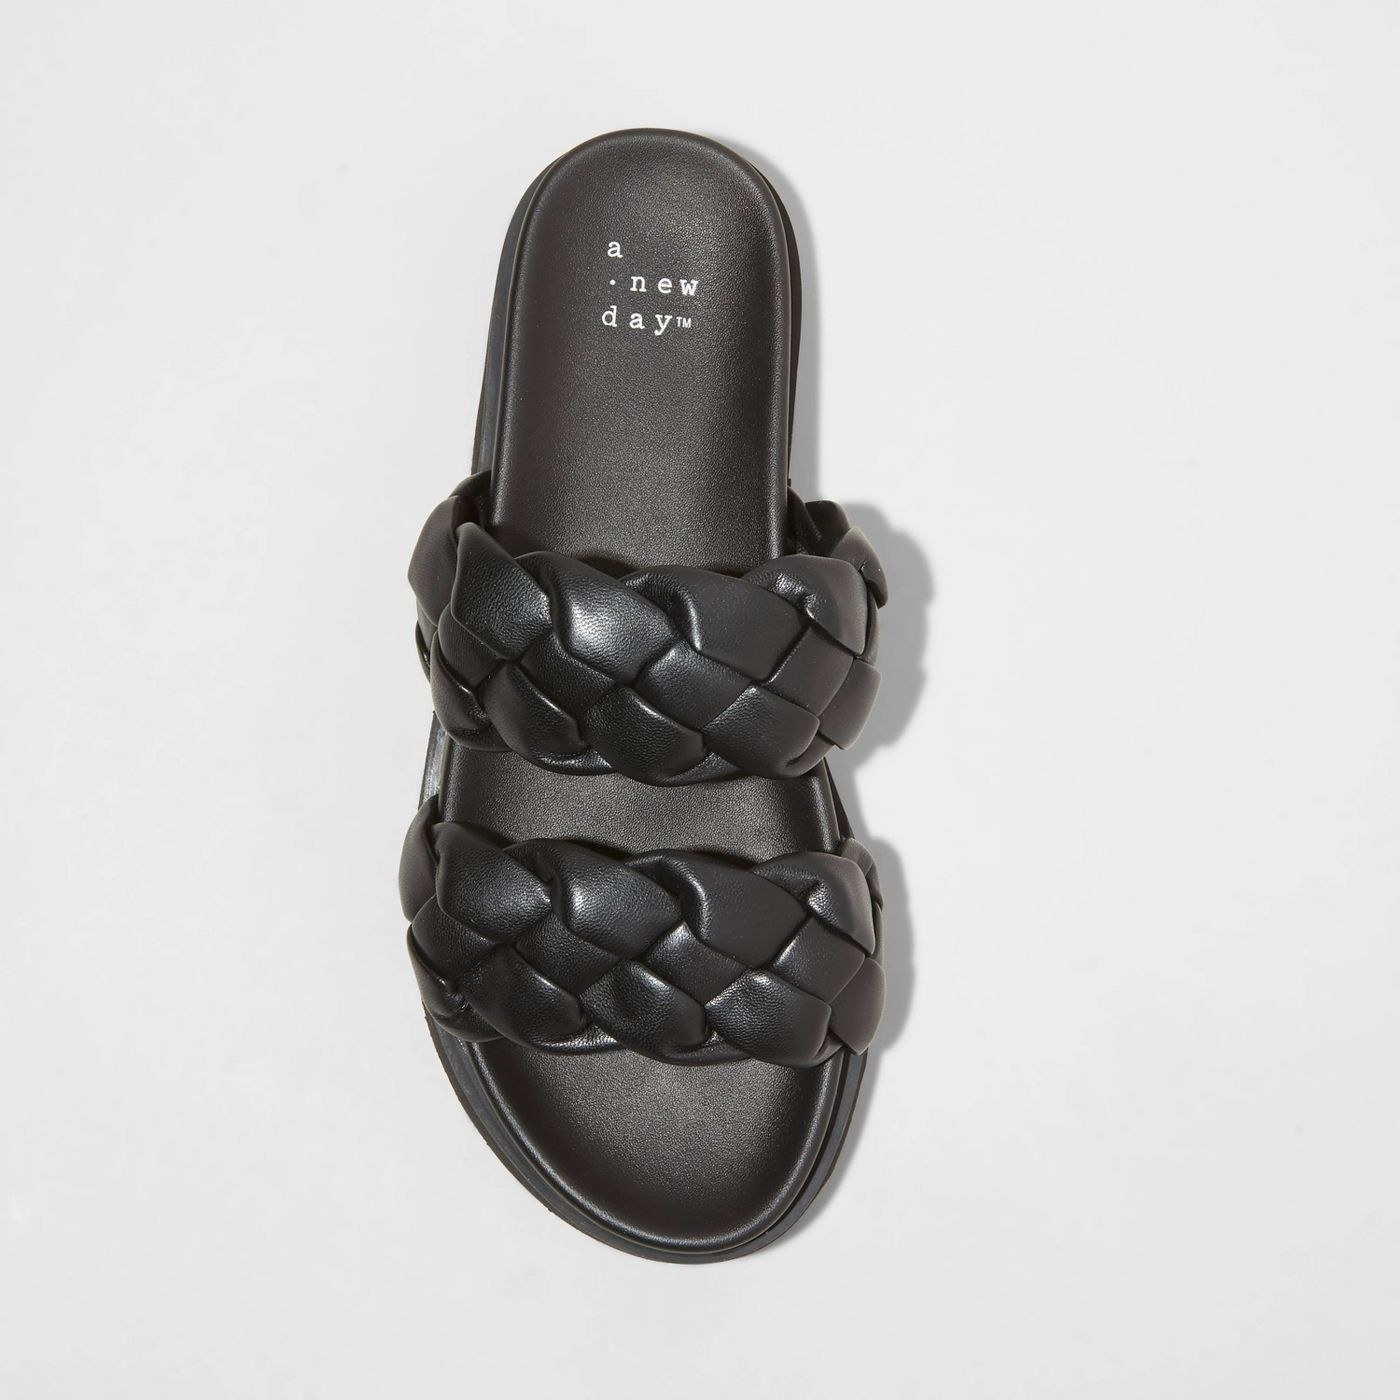 Black slip on sandals with two straps